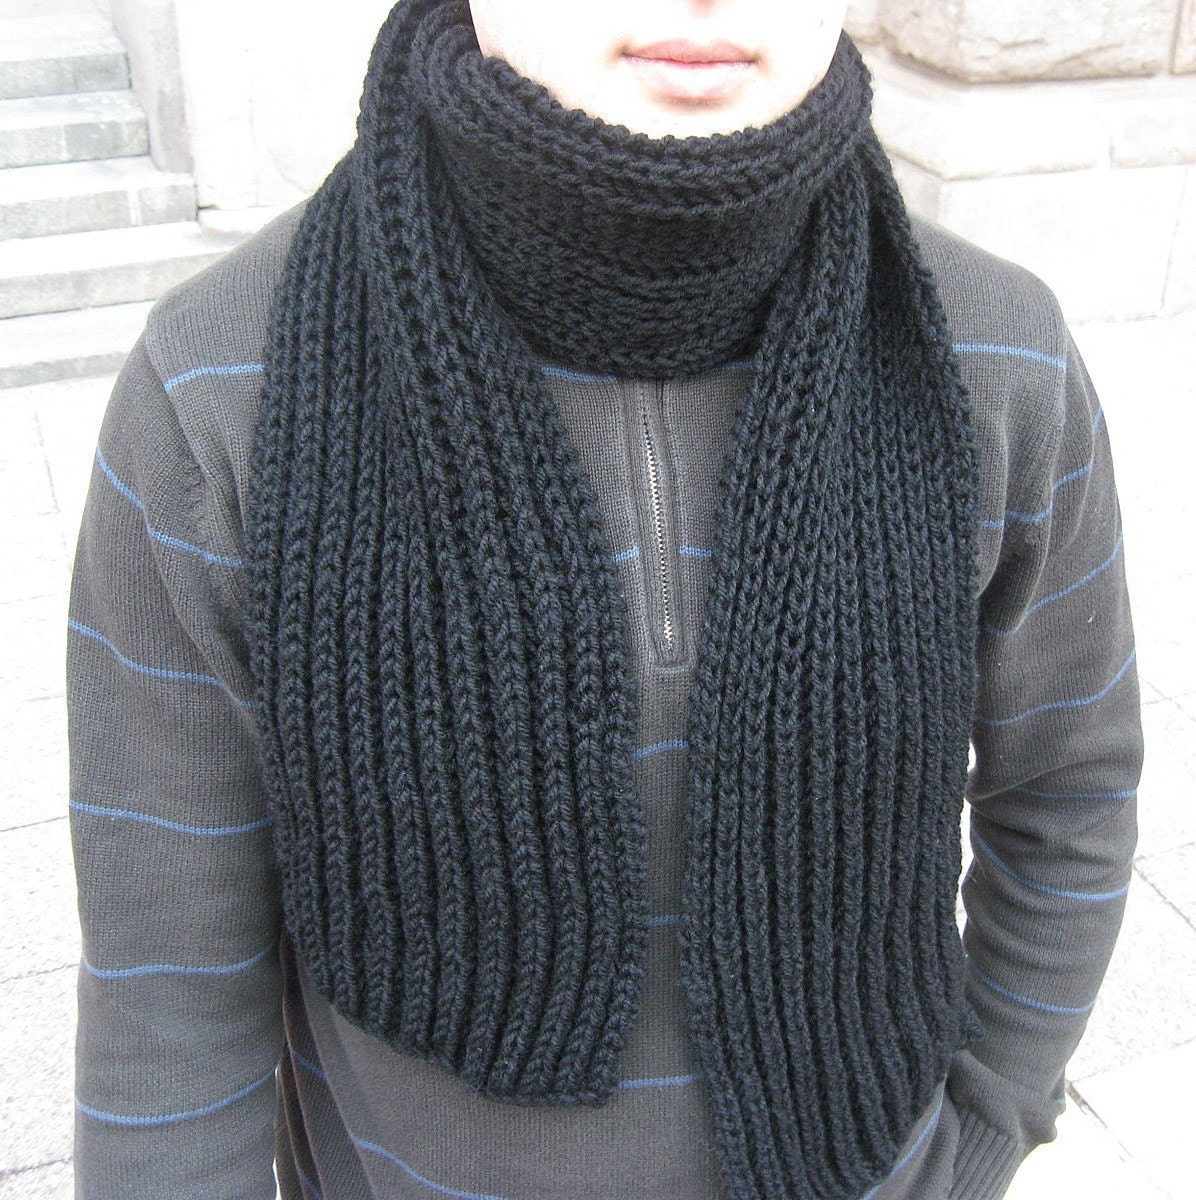 Knit Wool Scarf for MEN best gift for Him Hand Knitted Scarves For Men Knitted Scarves For Men Free Patterns